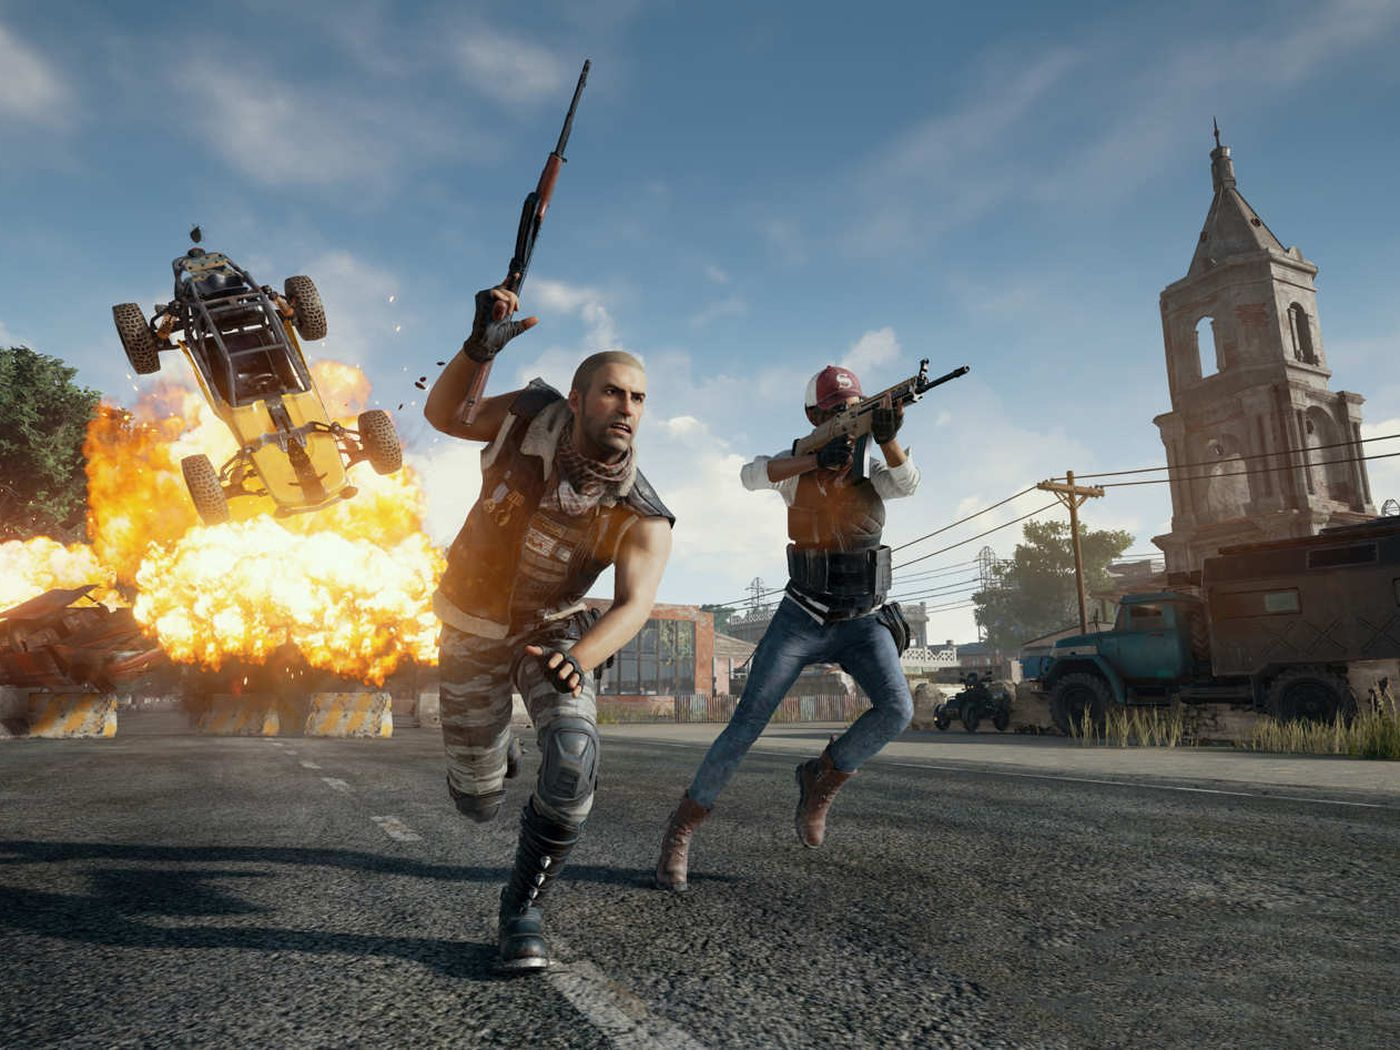 Pubg Drops Fortnite Copyright Lawsuit As The Battle Ends In A Draw The Verge